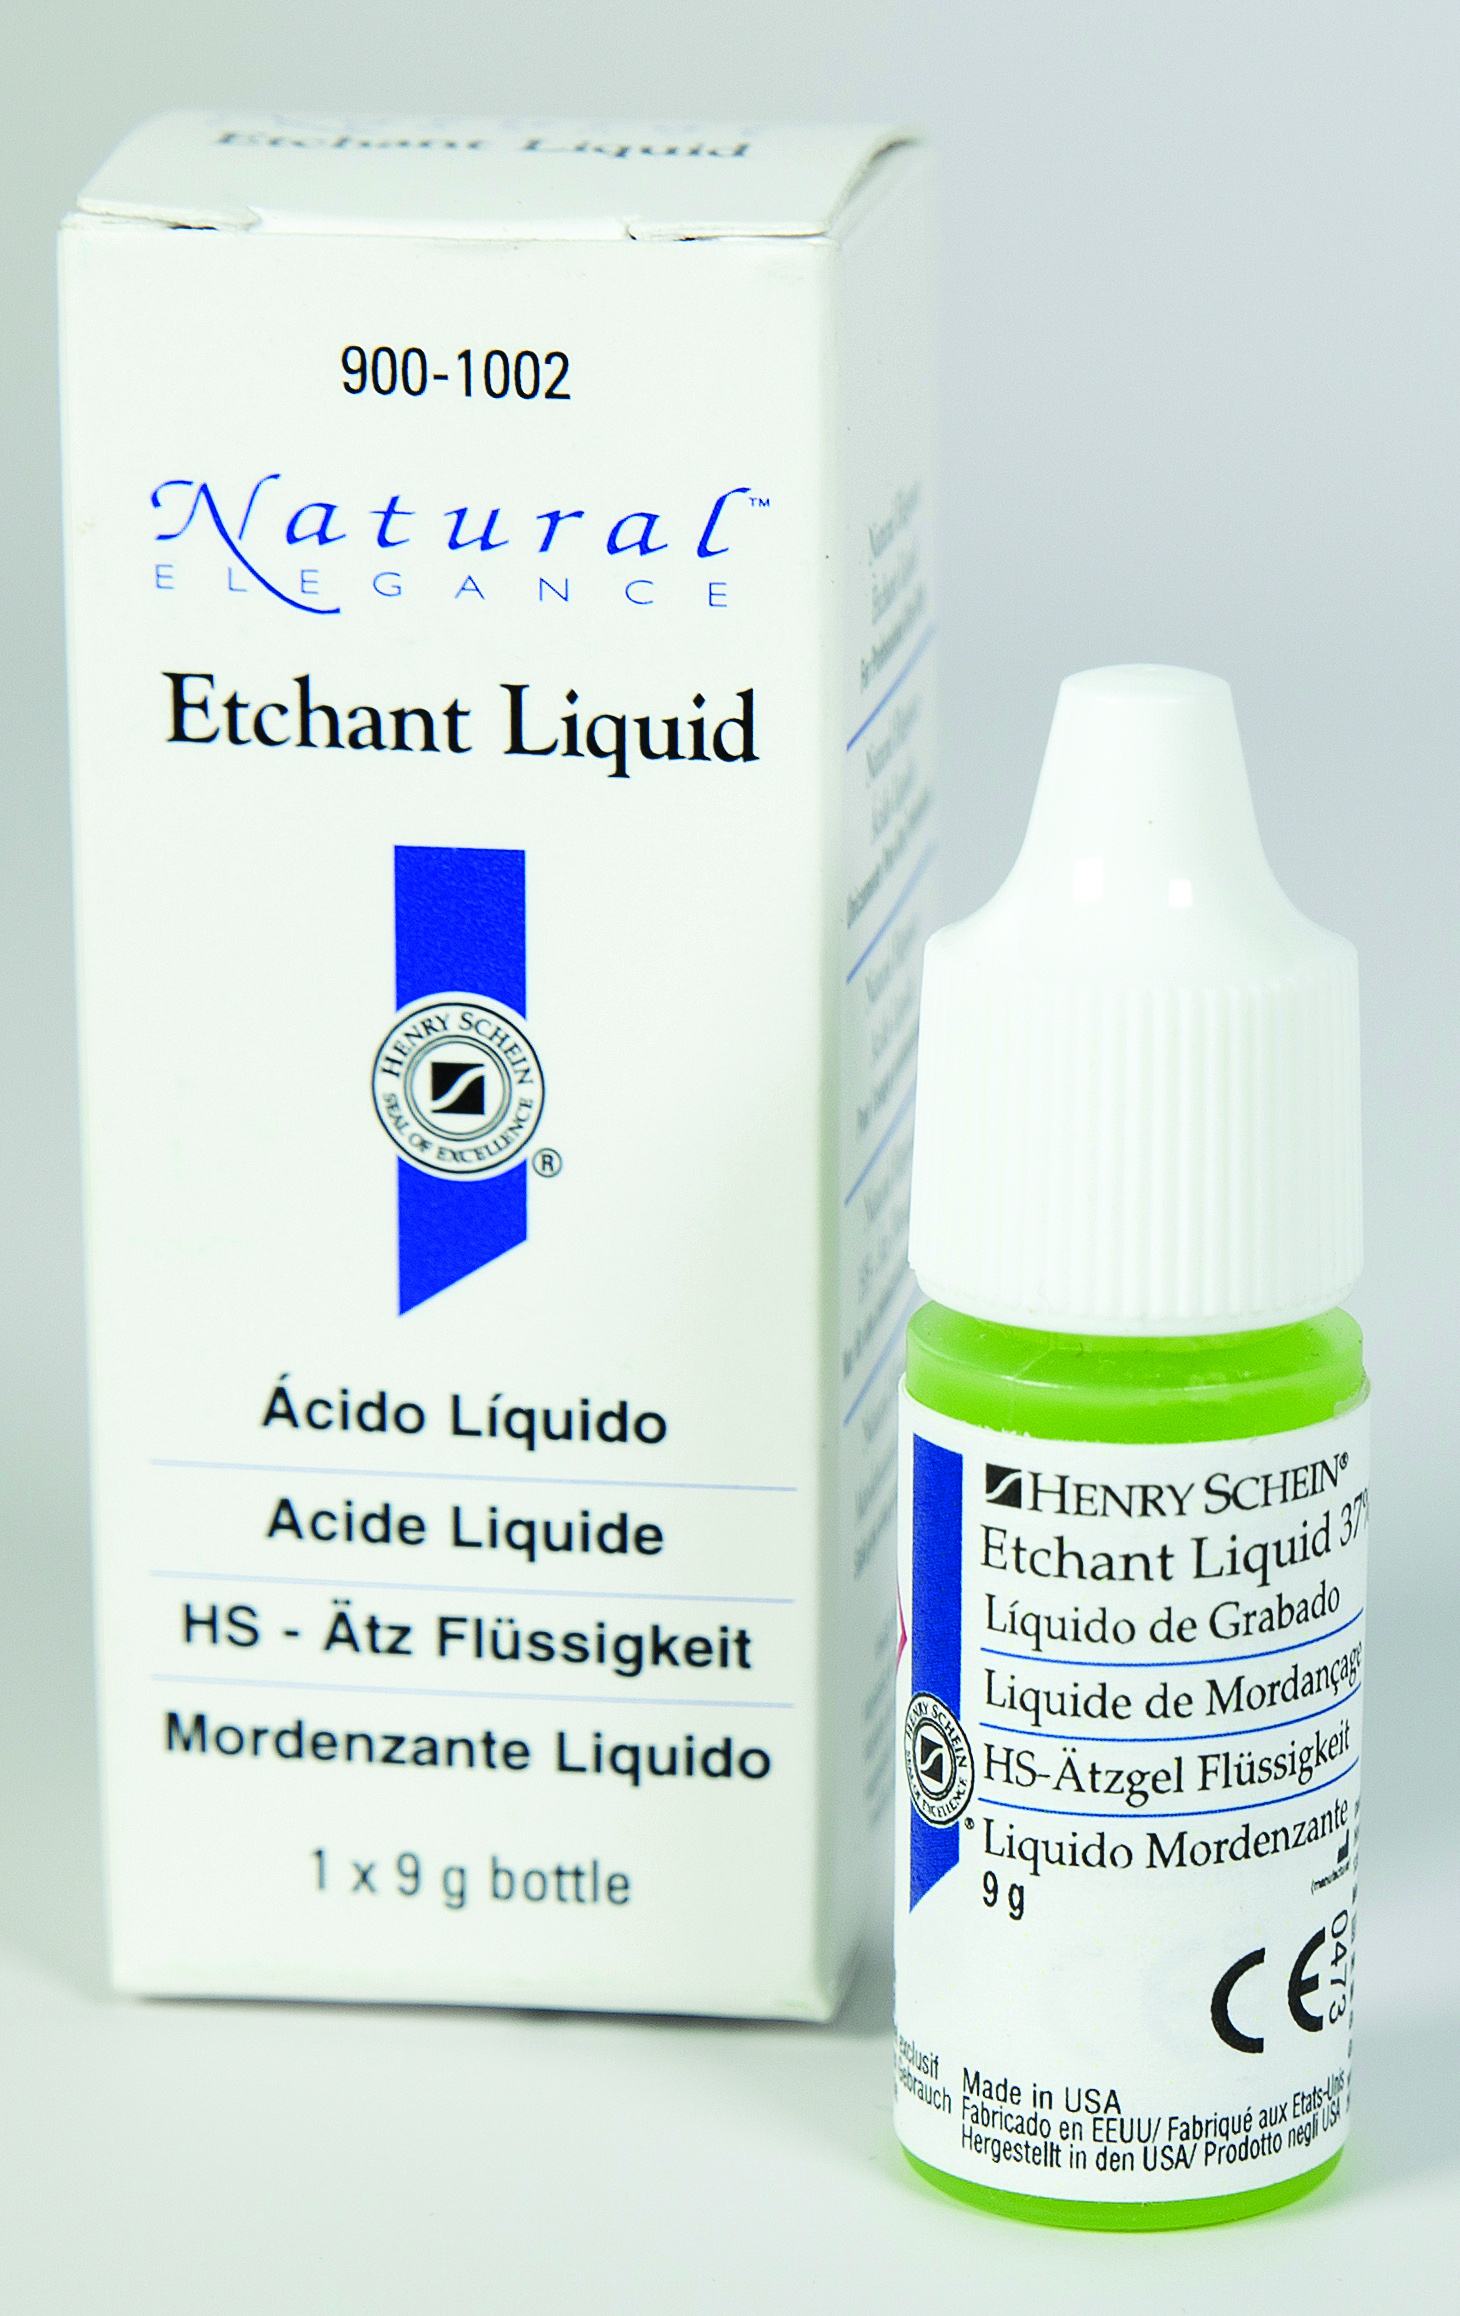 Natural Elegance Etch Liquid